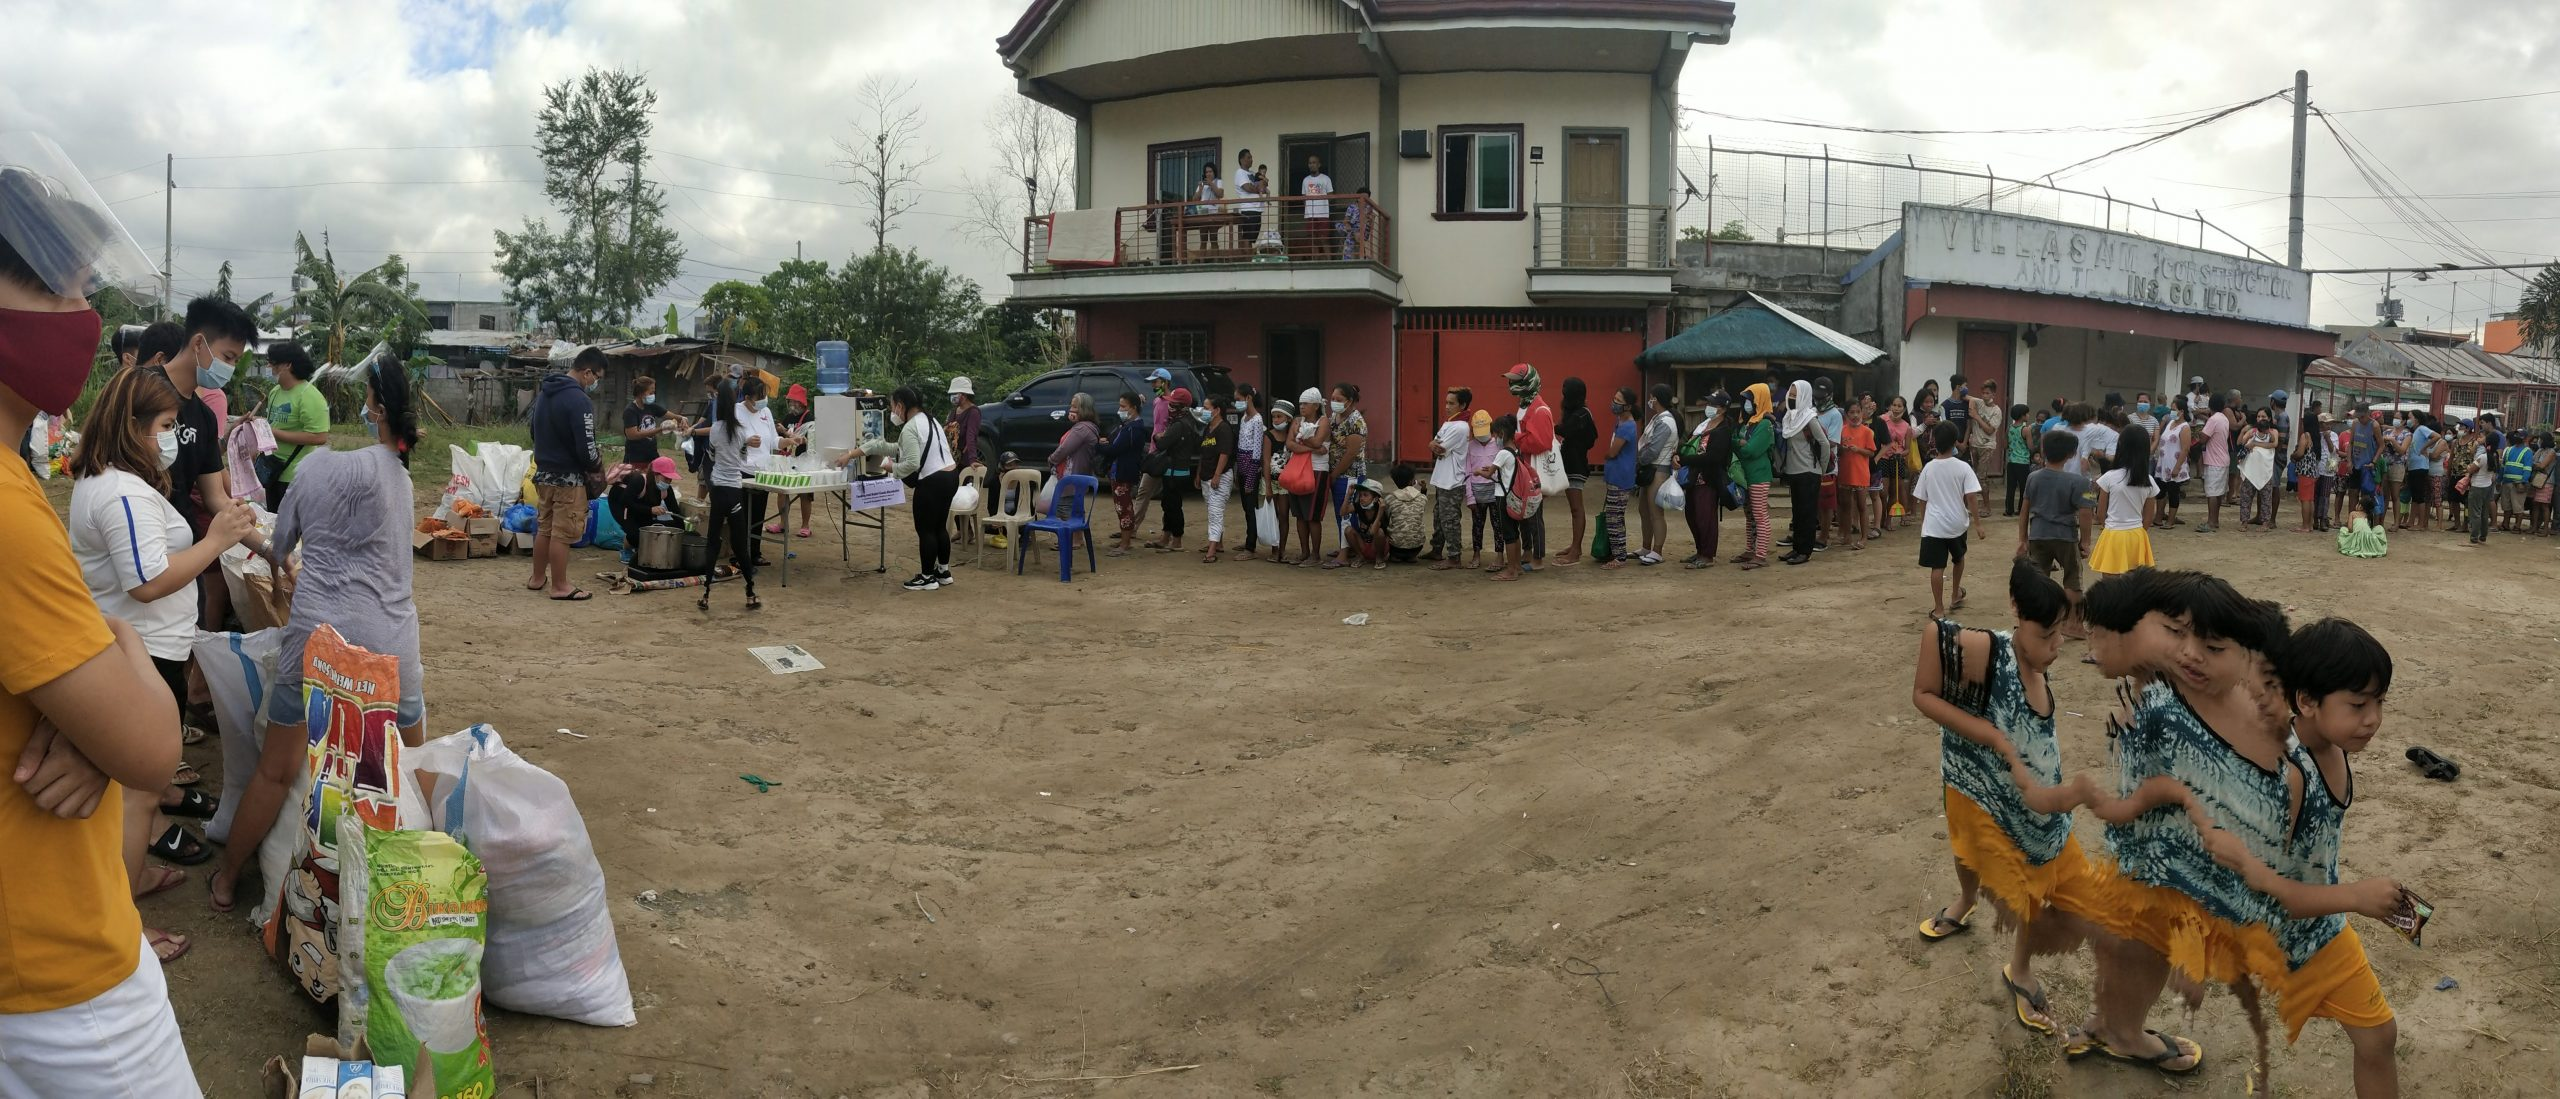 Hundreds lined up for the feeding and distribution of relief goods.